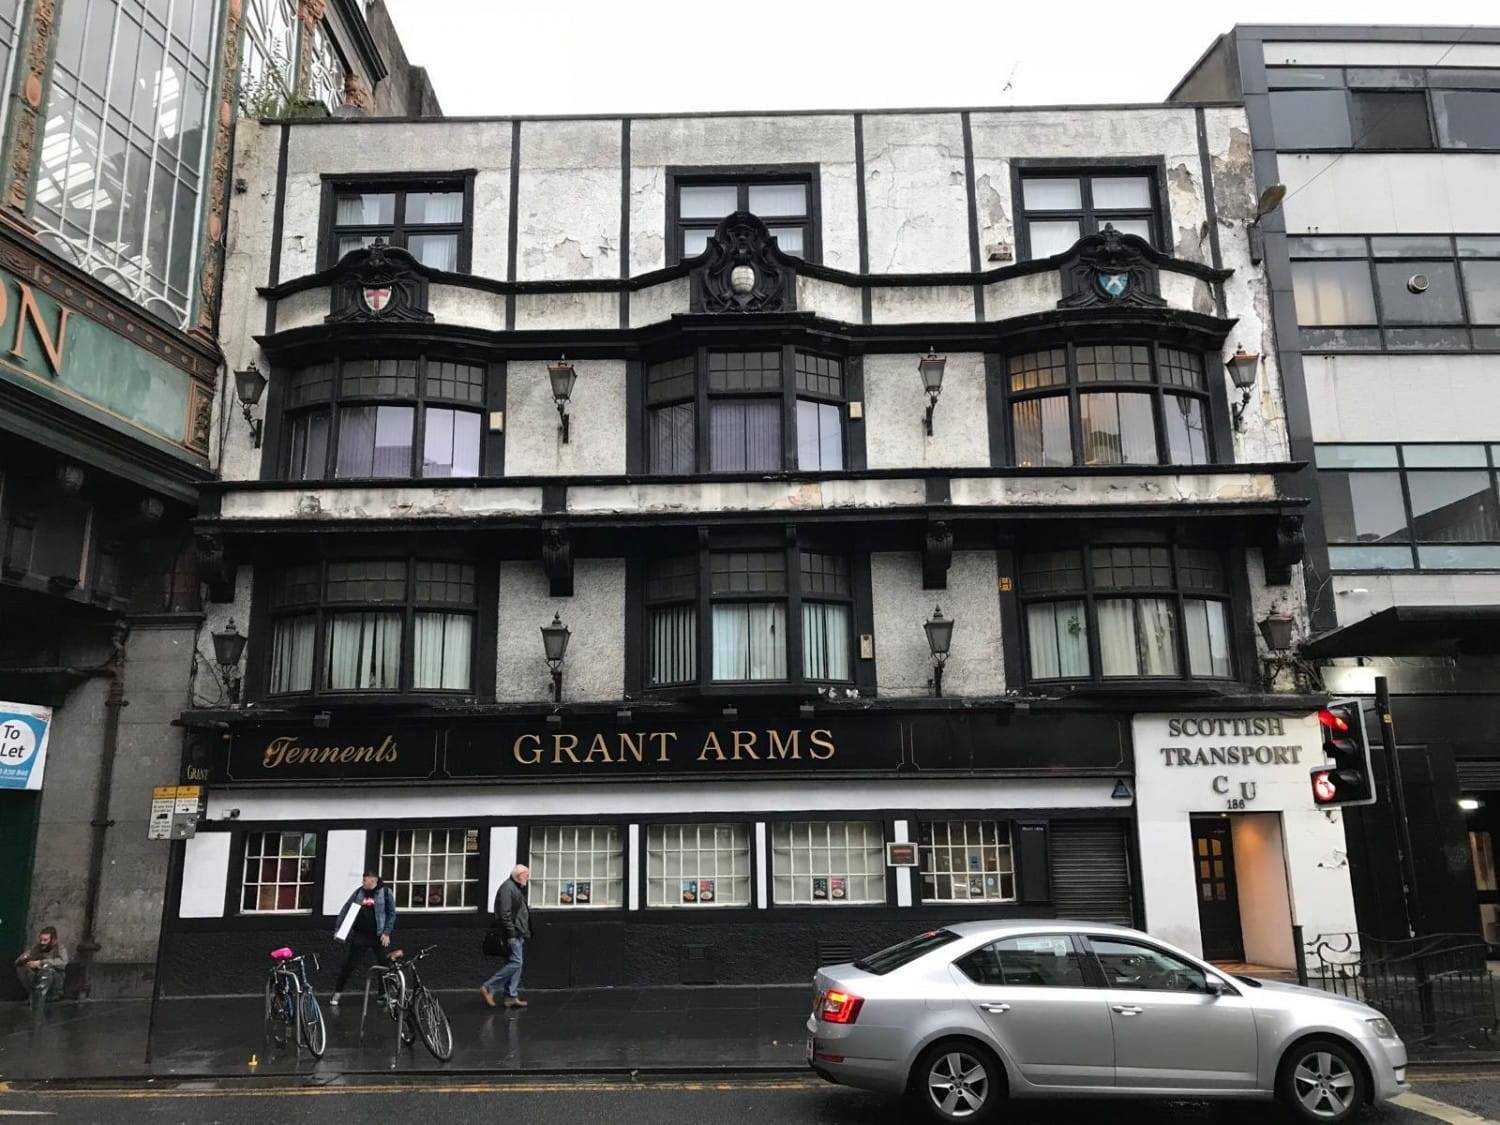 The Grant Arms before (GCHT)